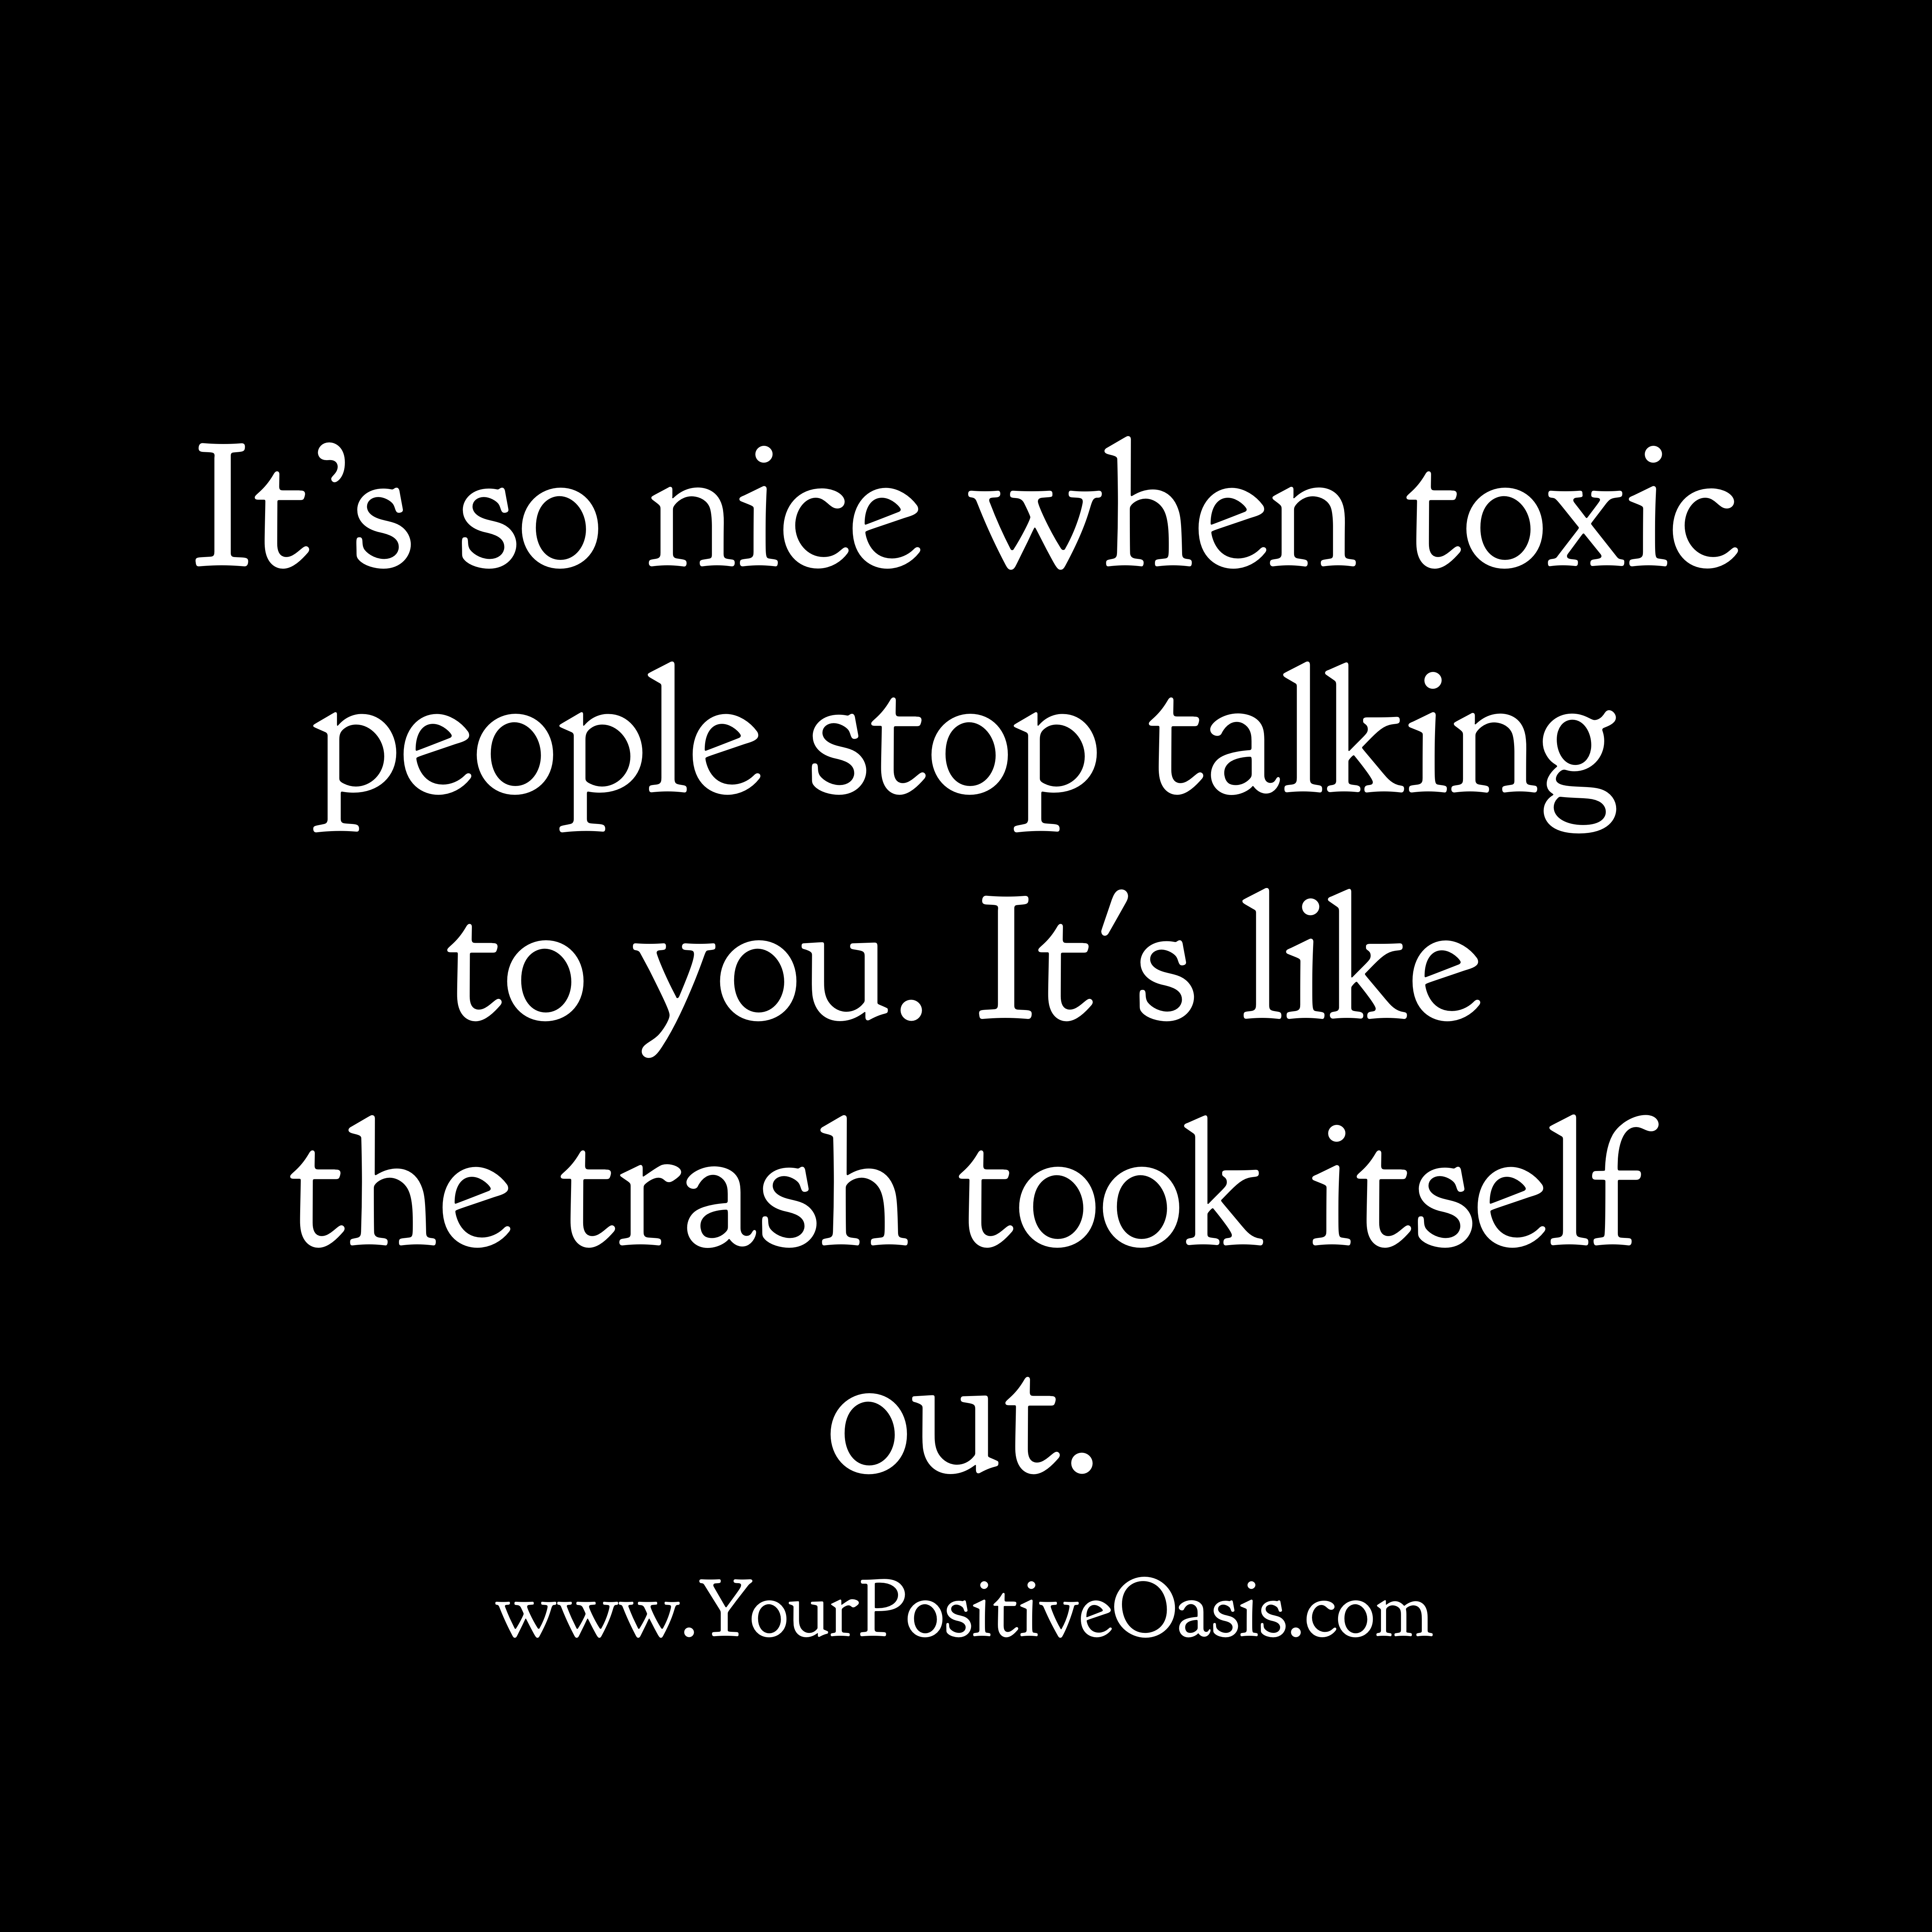 6 Toxic Types of People You Should Keep Out of Your Life